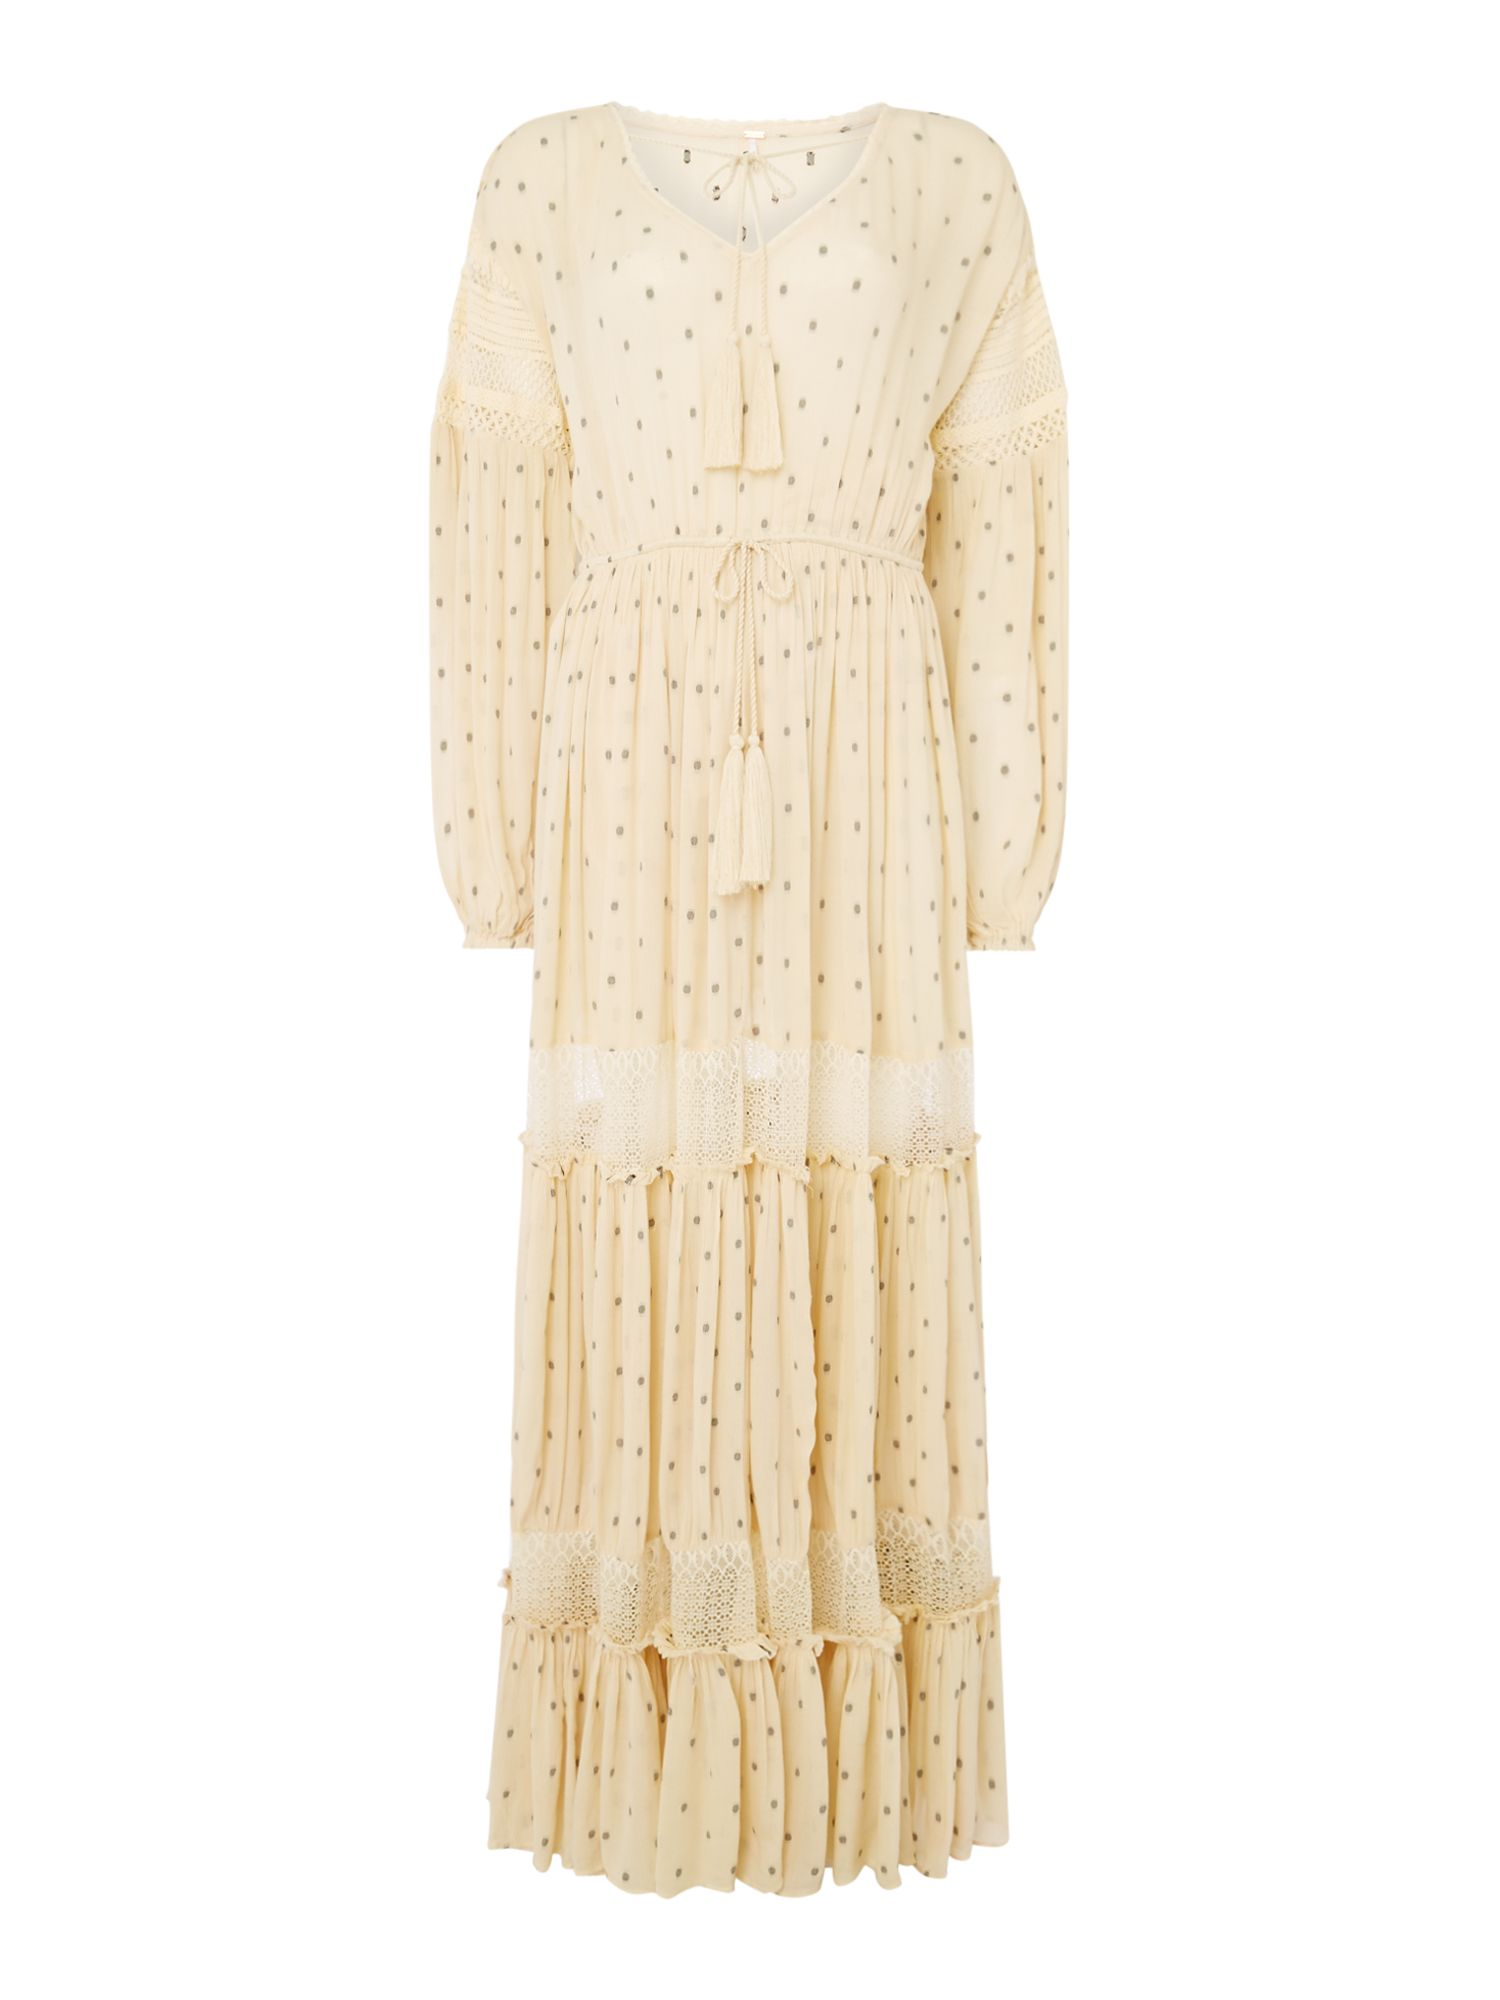 Free People Long Sleeve Crochet Panel Sada Maxi Dress, White